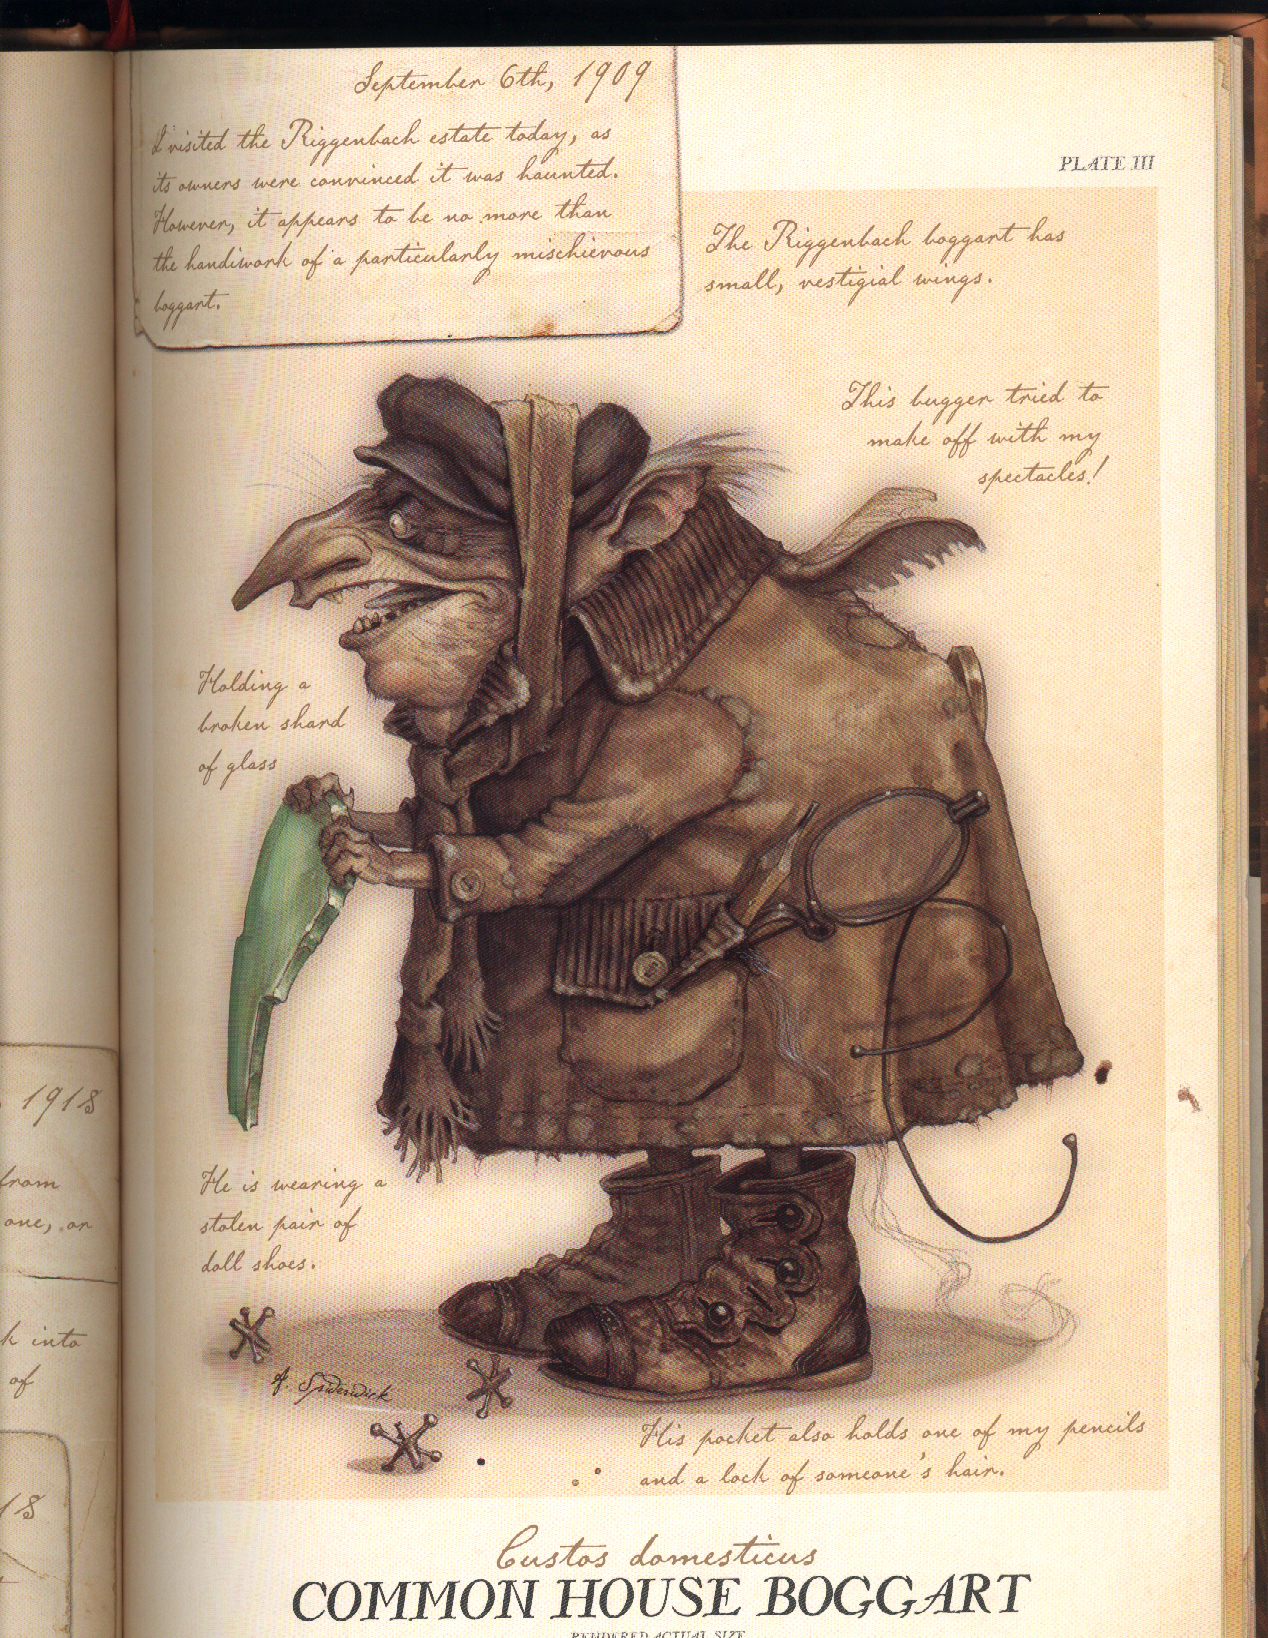 The Boggart is a folklore creature